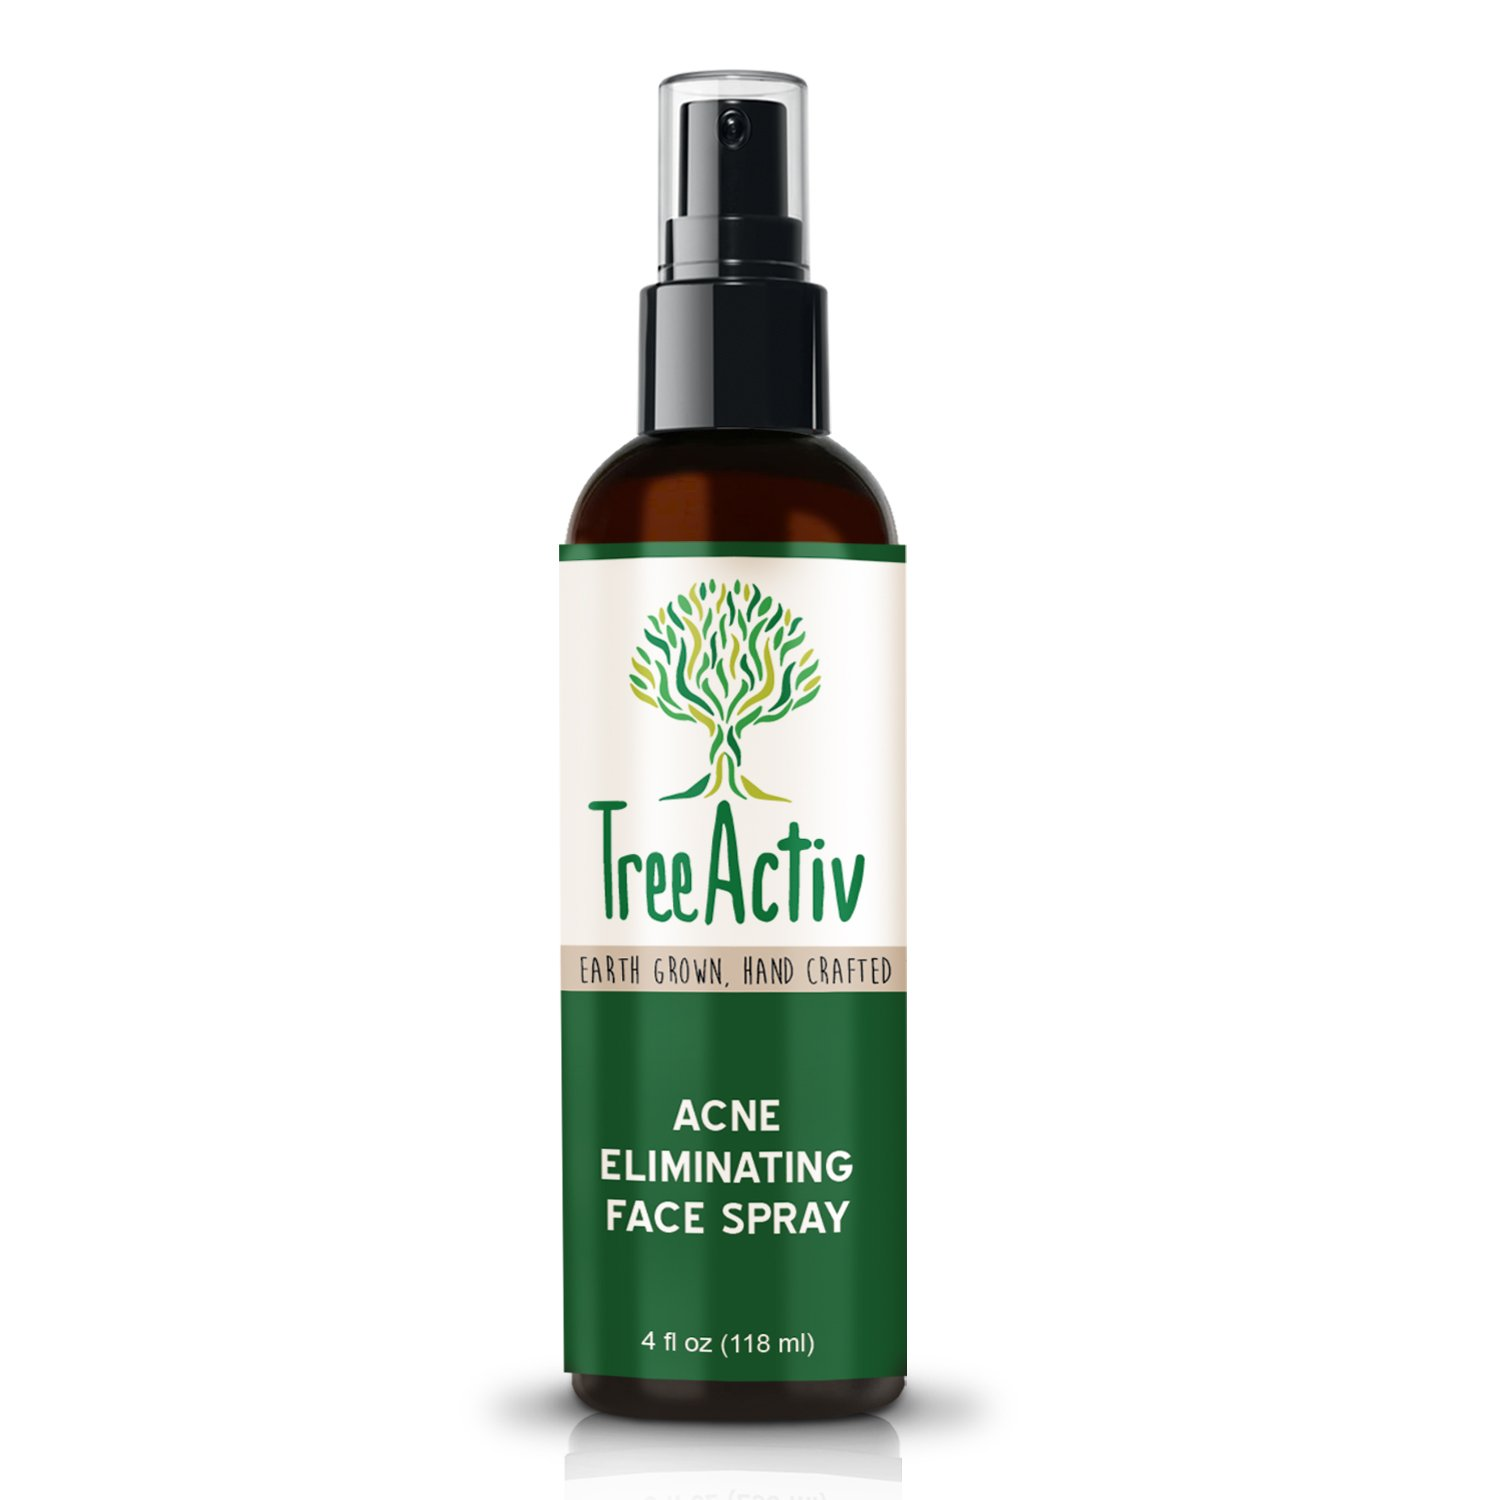 TreeActiv Acne Eliminating Face Spray | Facial Mist to Cleanse, Tone, Balance Skin | Lemongrass Water, Sandalwood Water, Witch Hazel | Works as Aftershave | Made in USA | 4 fl oz